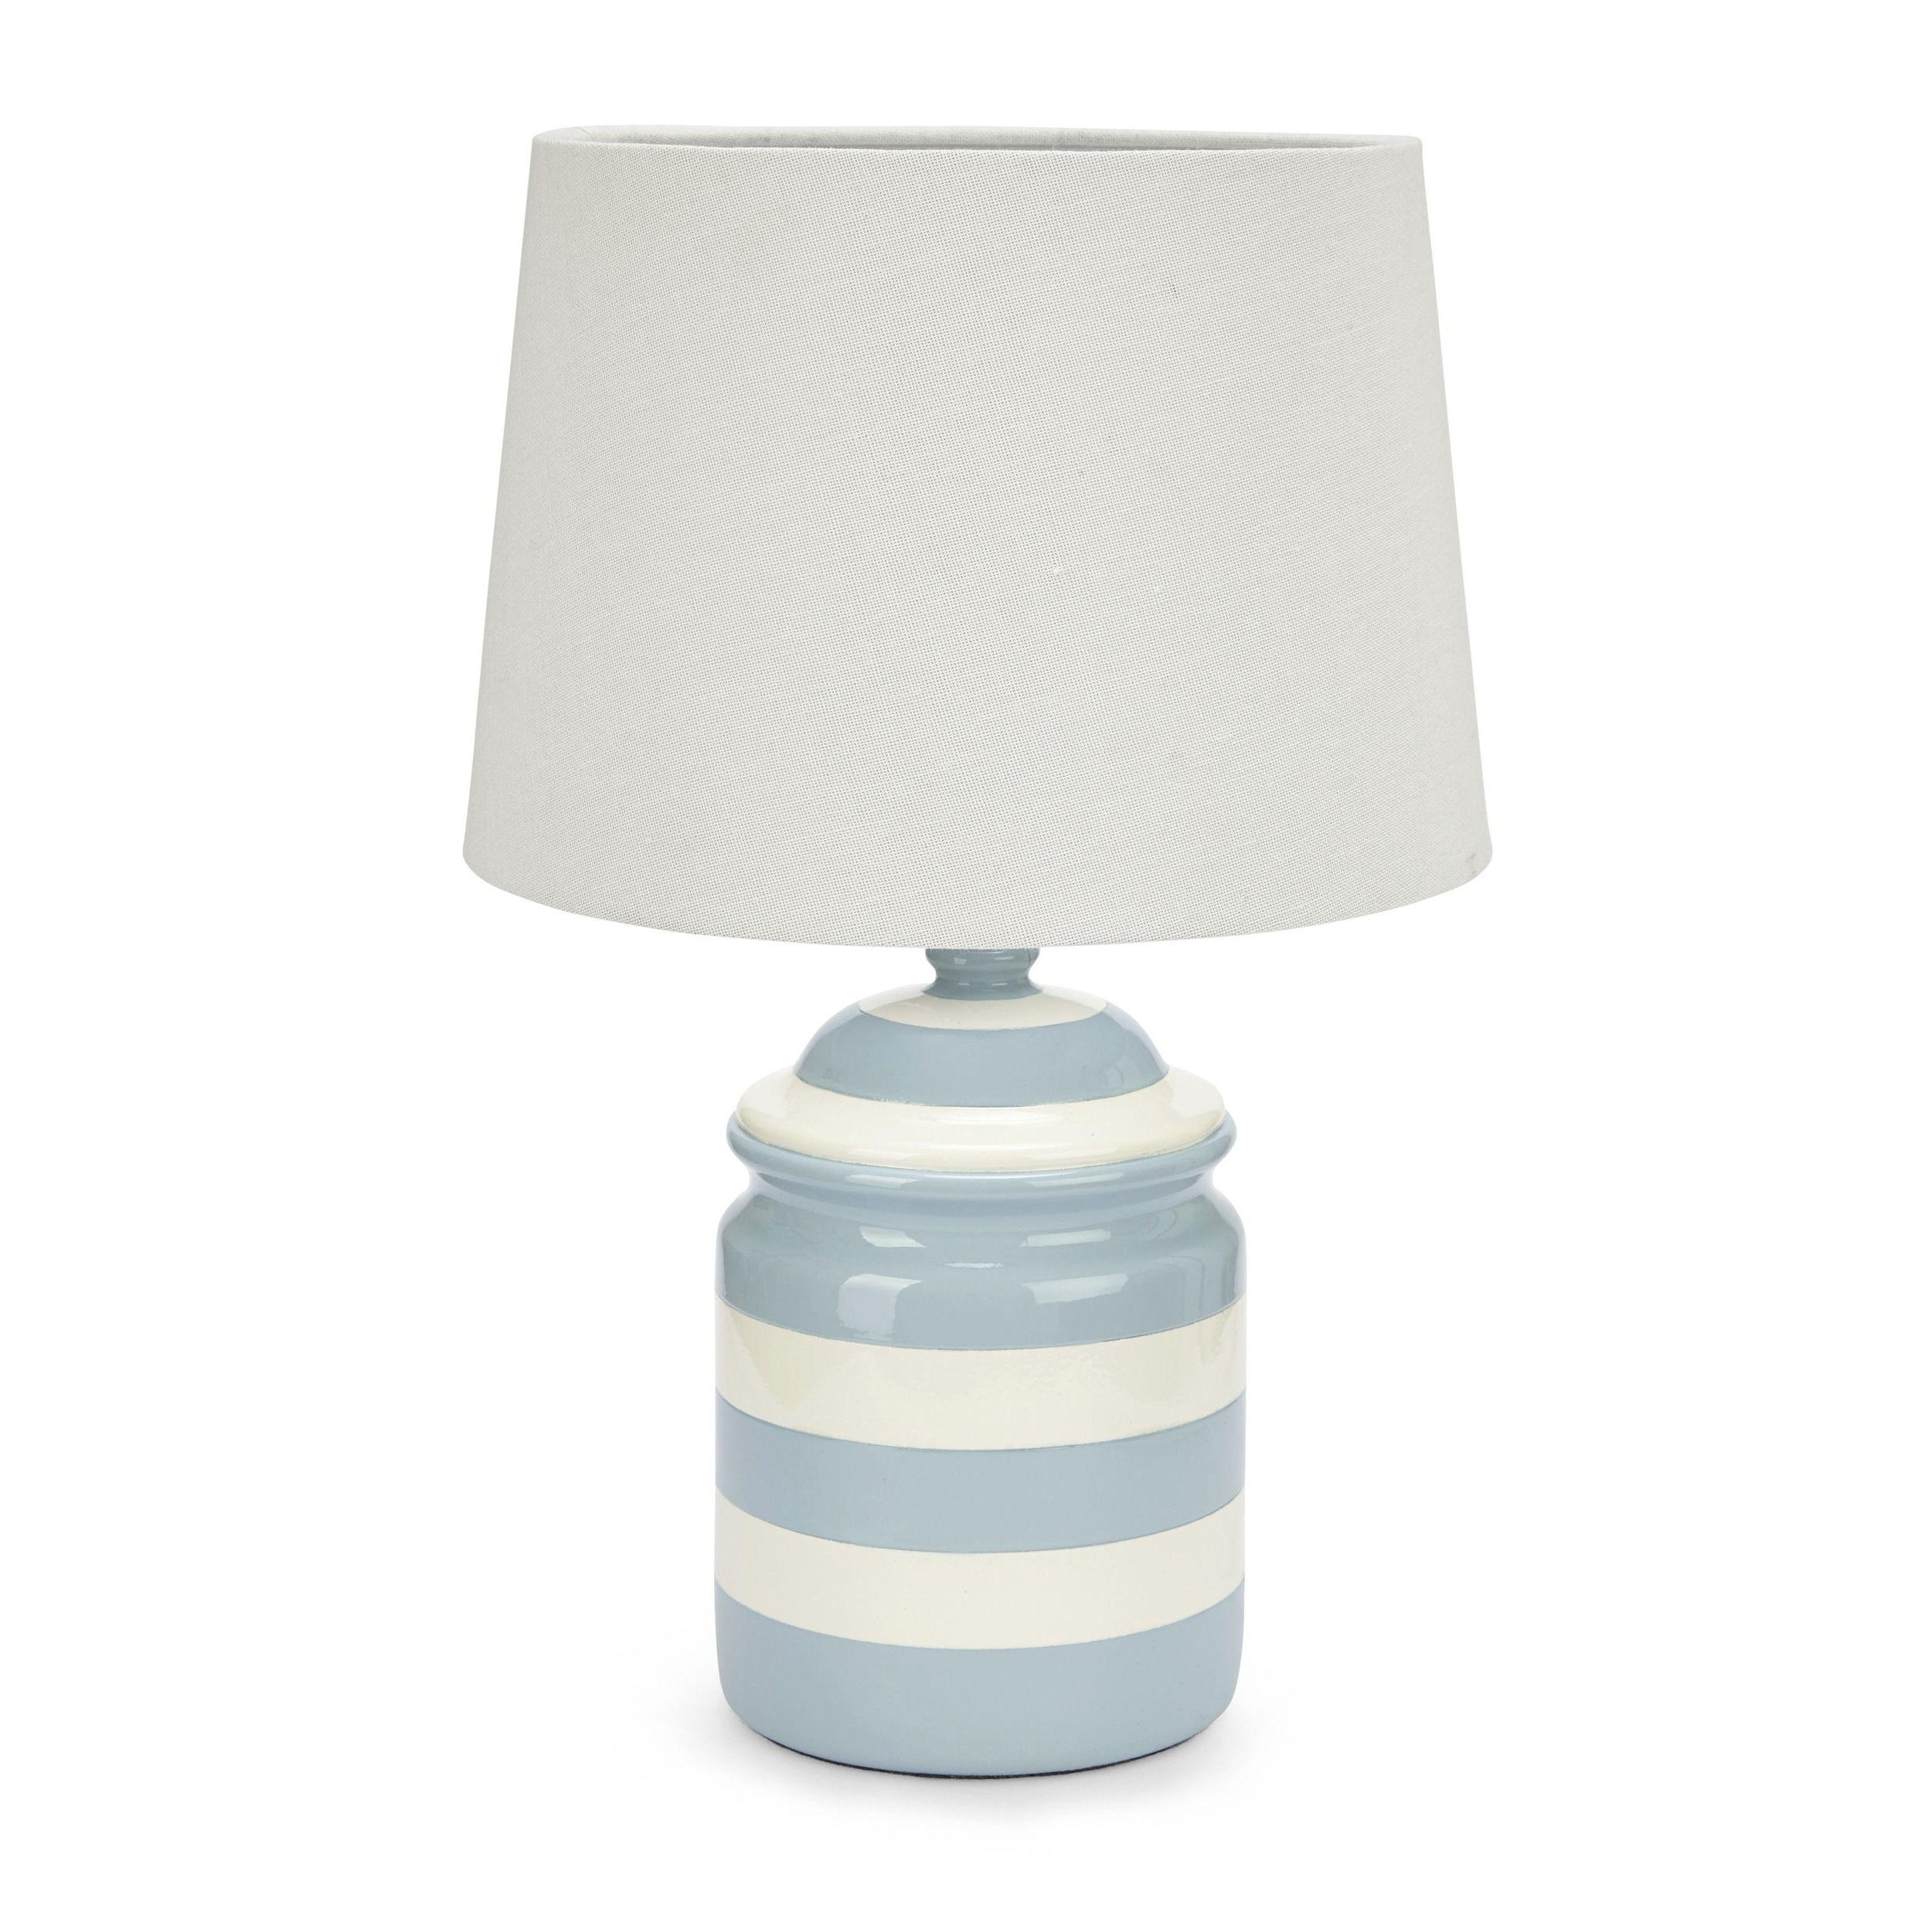 Pinterest Intended For Well Known Laura Ashley Table Lamps For Living Room (View 14 of 20)